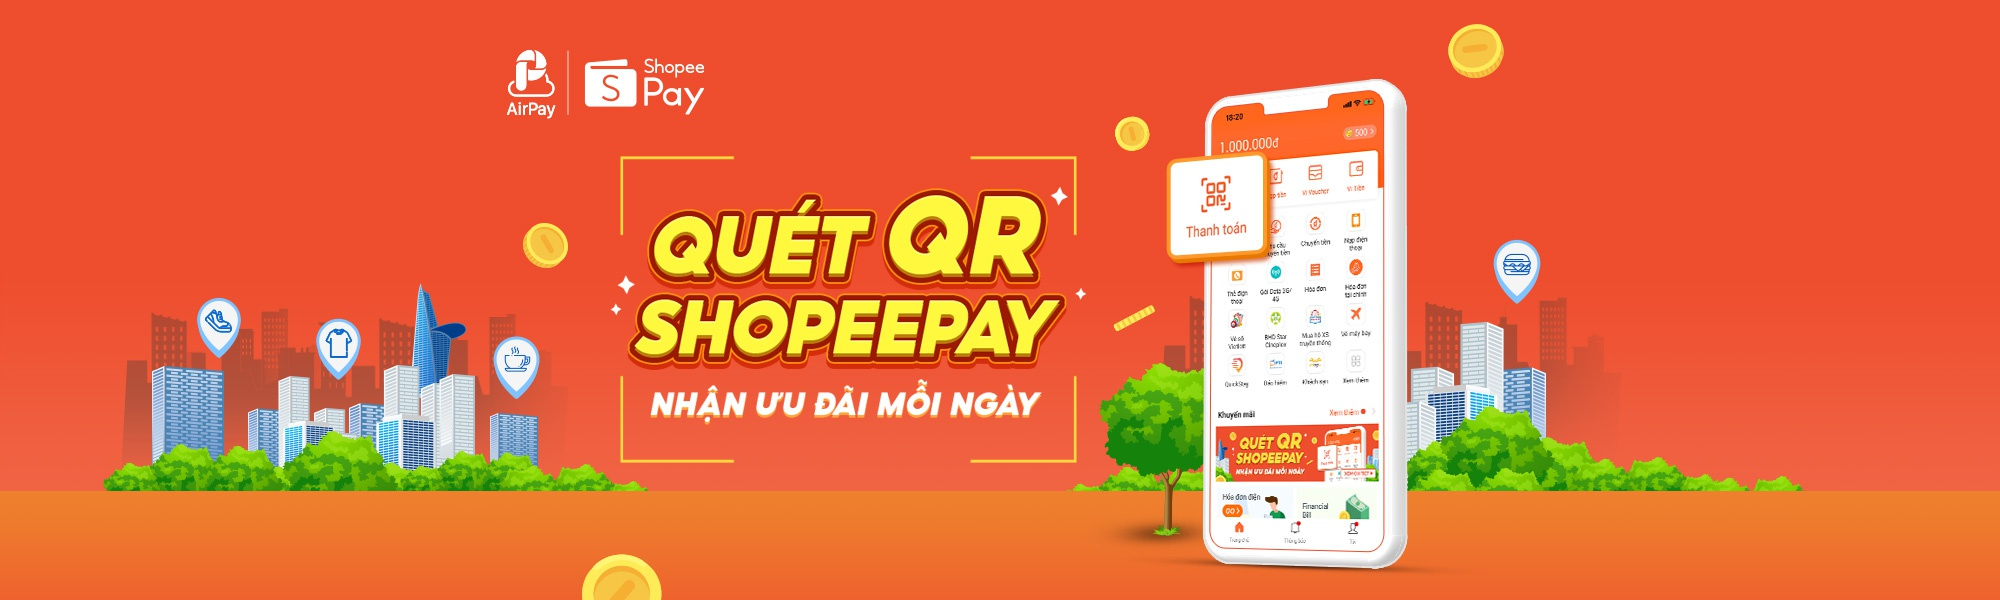 quet-qr-scan-and-pay